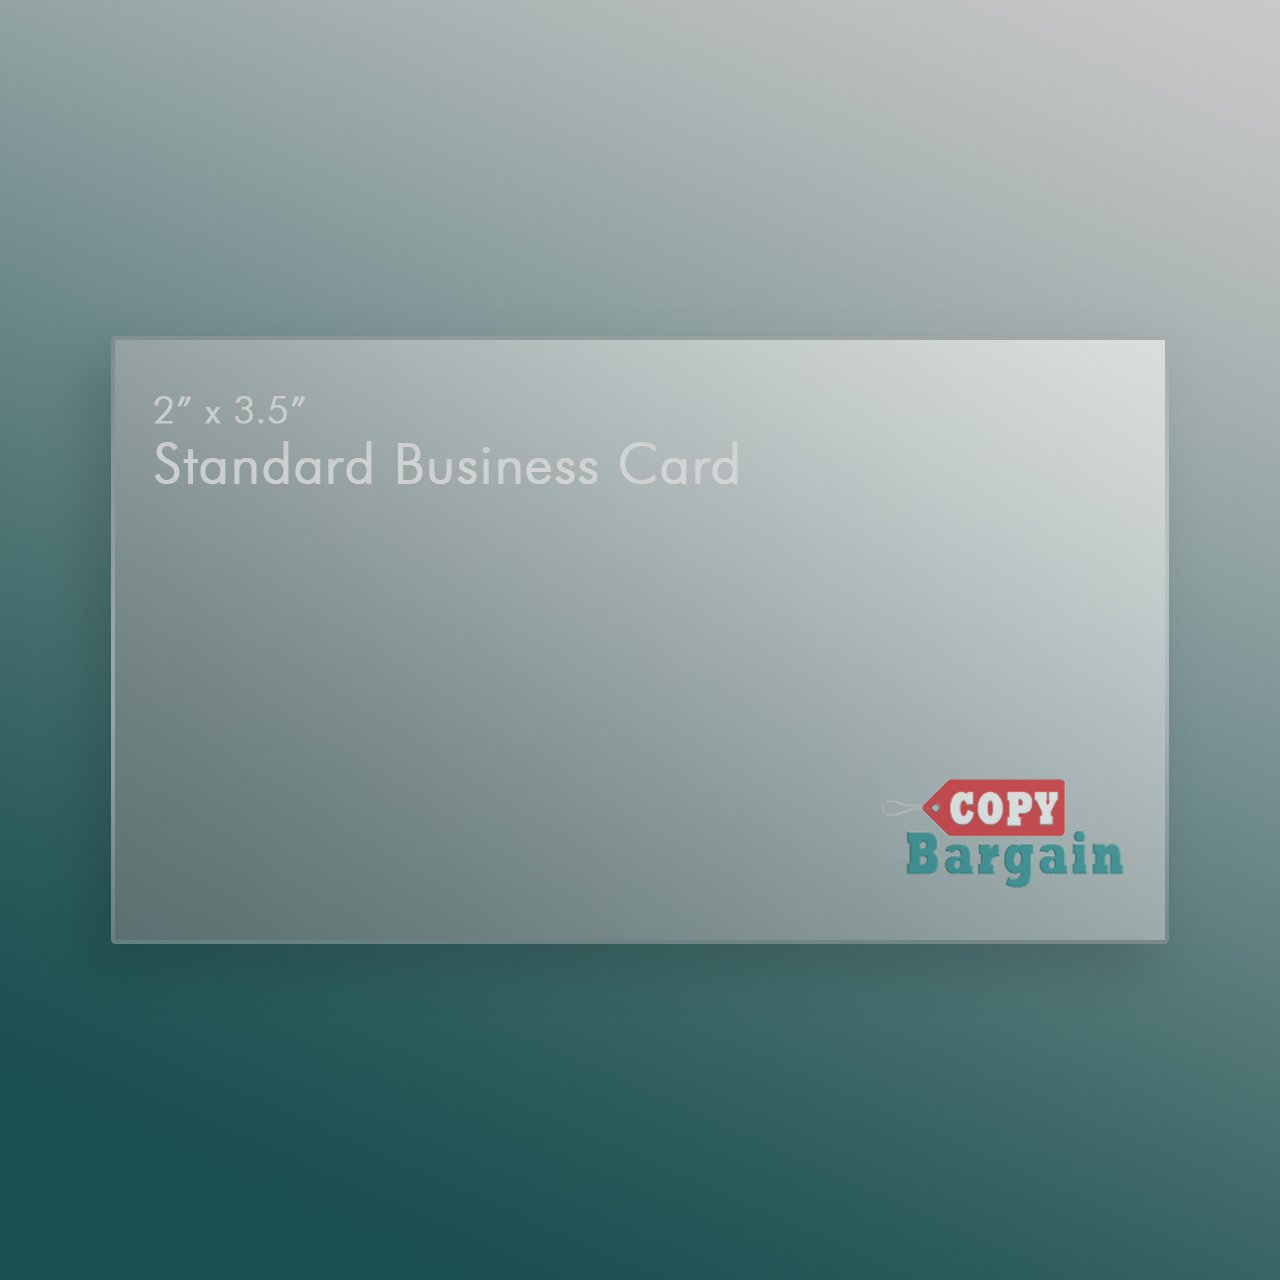 standard business card printing - Standard Business Card